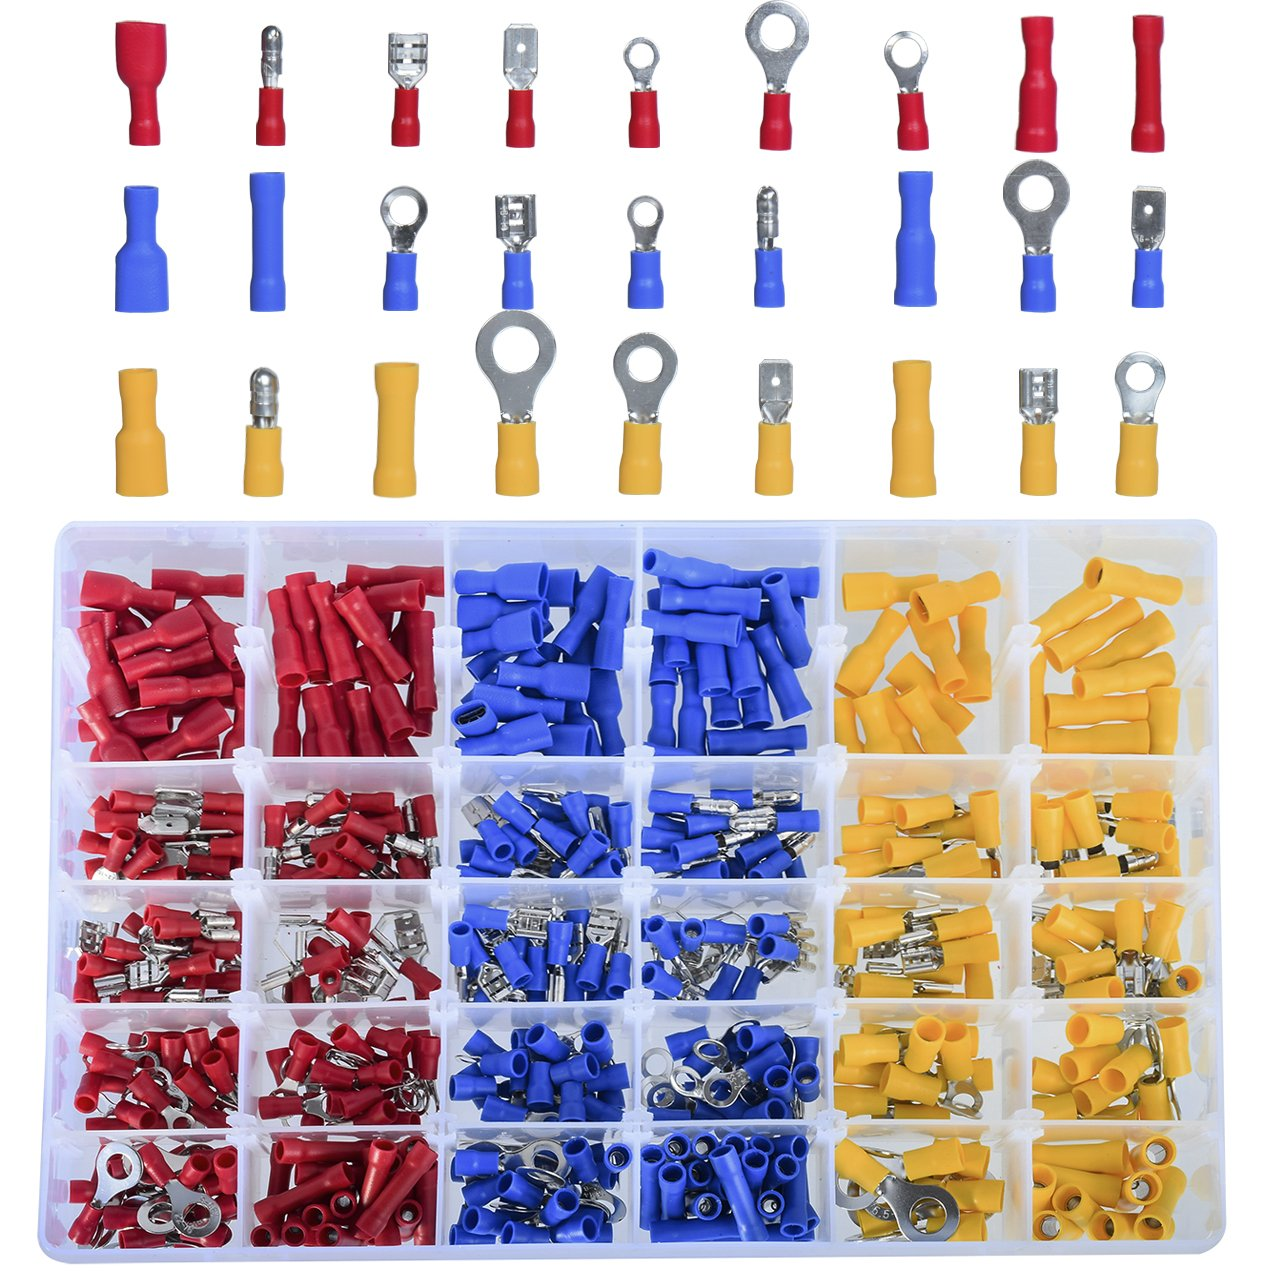 DEDC 480Pcs Insulated Wiring Terminals Wire Connectors Assortment ...